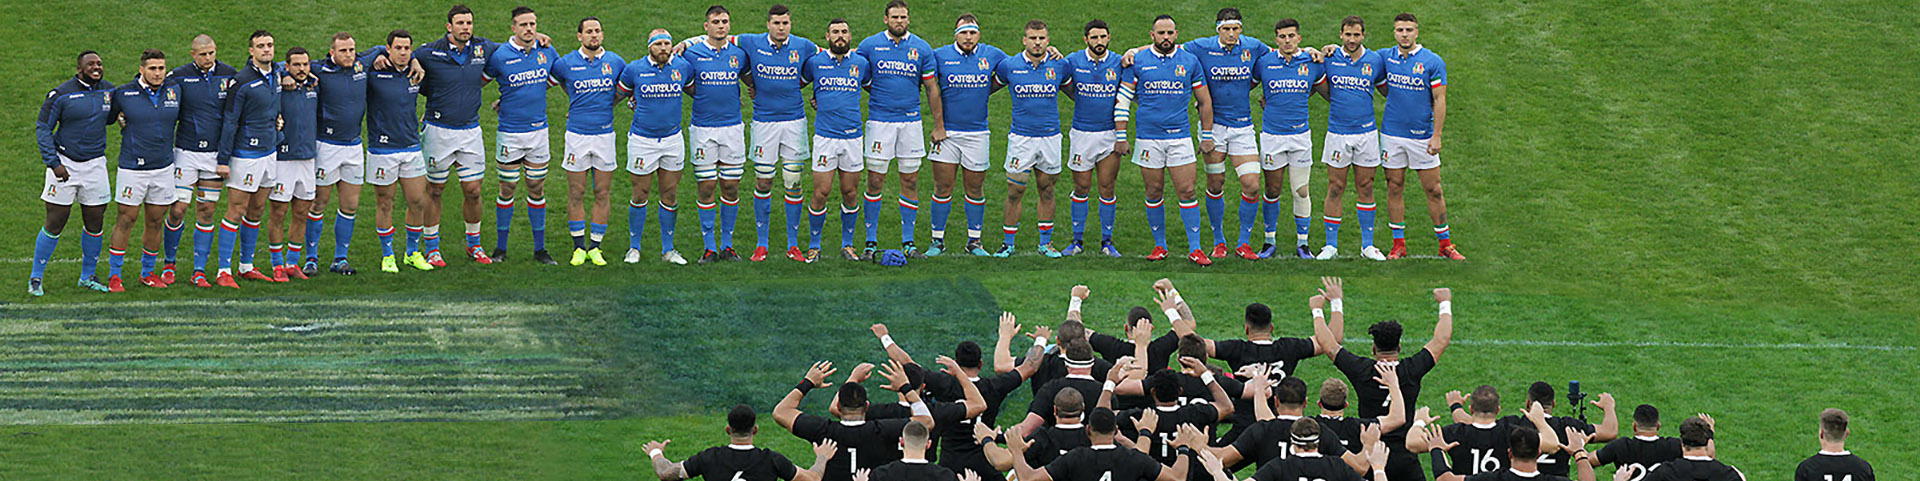 ALLRUGBY rivista italiana del rugby - Azzuri All Blacks